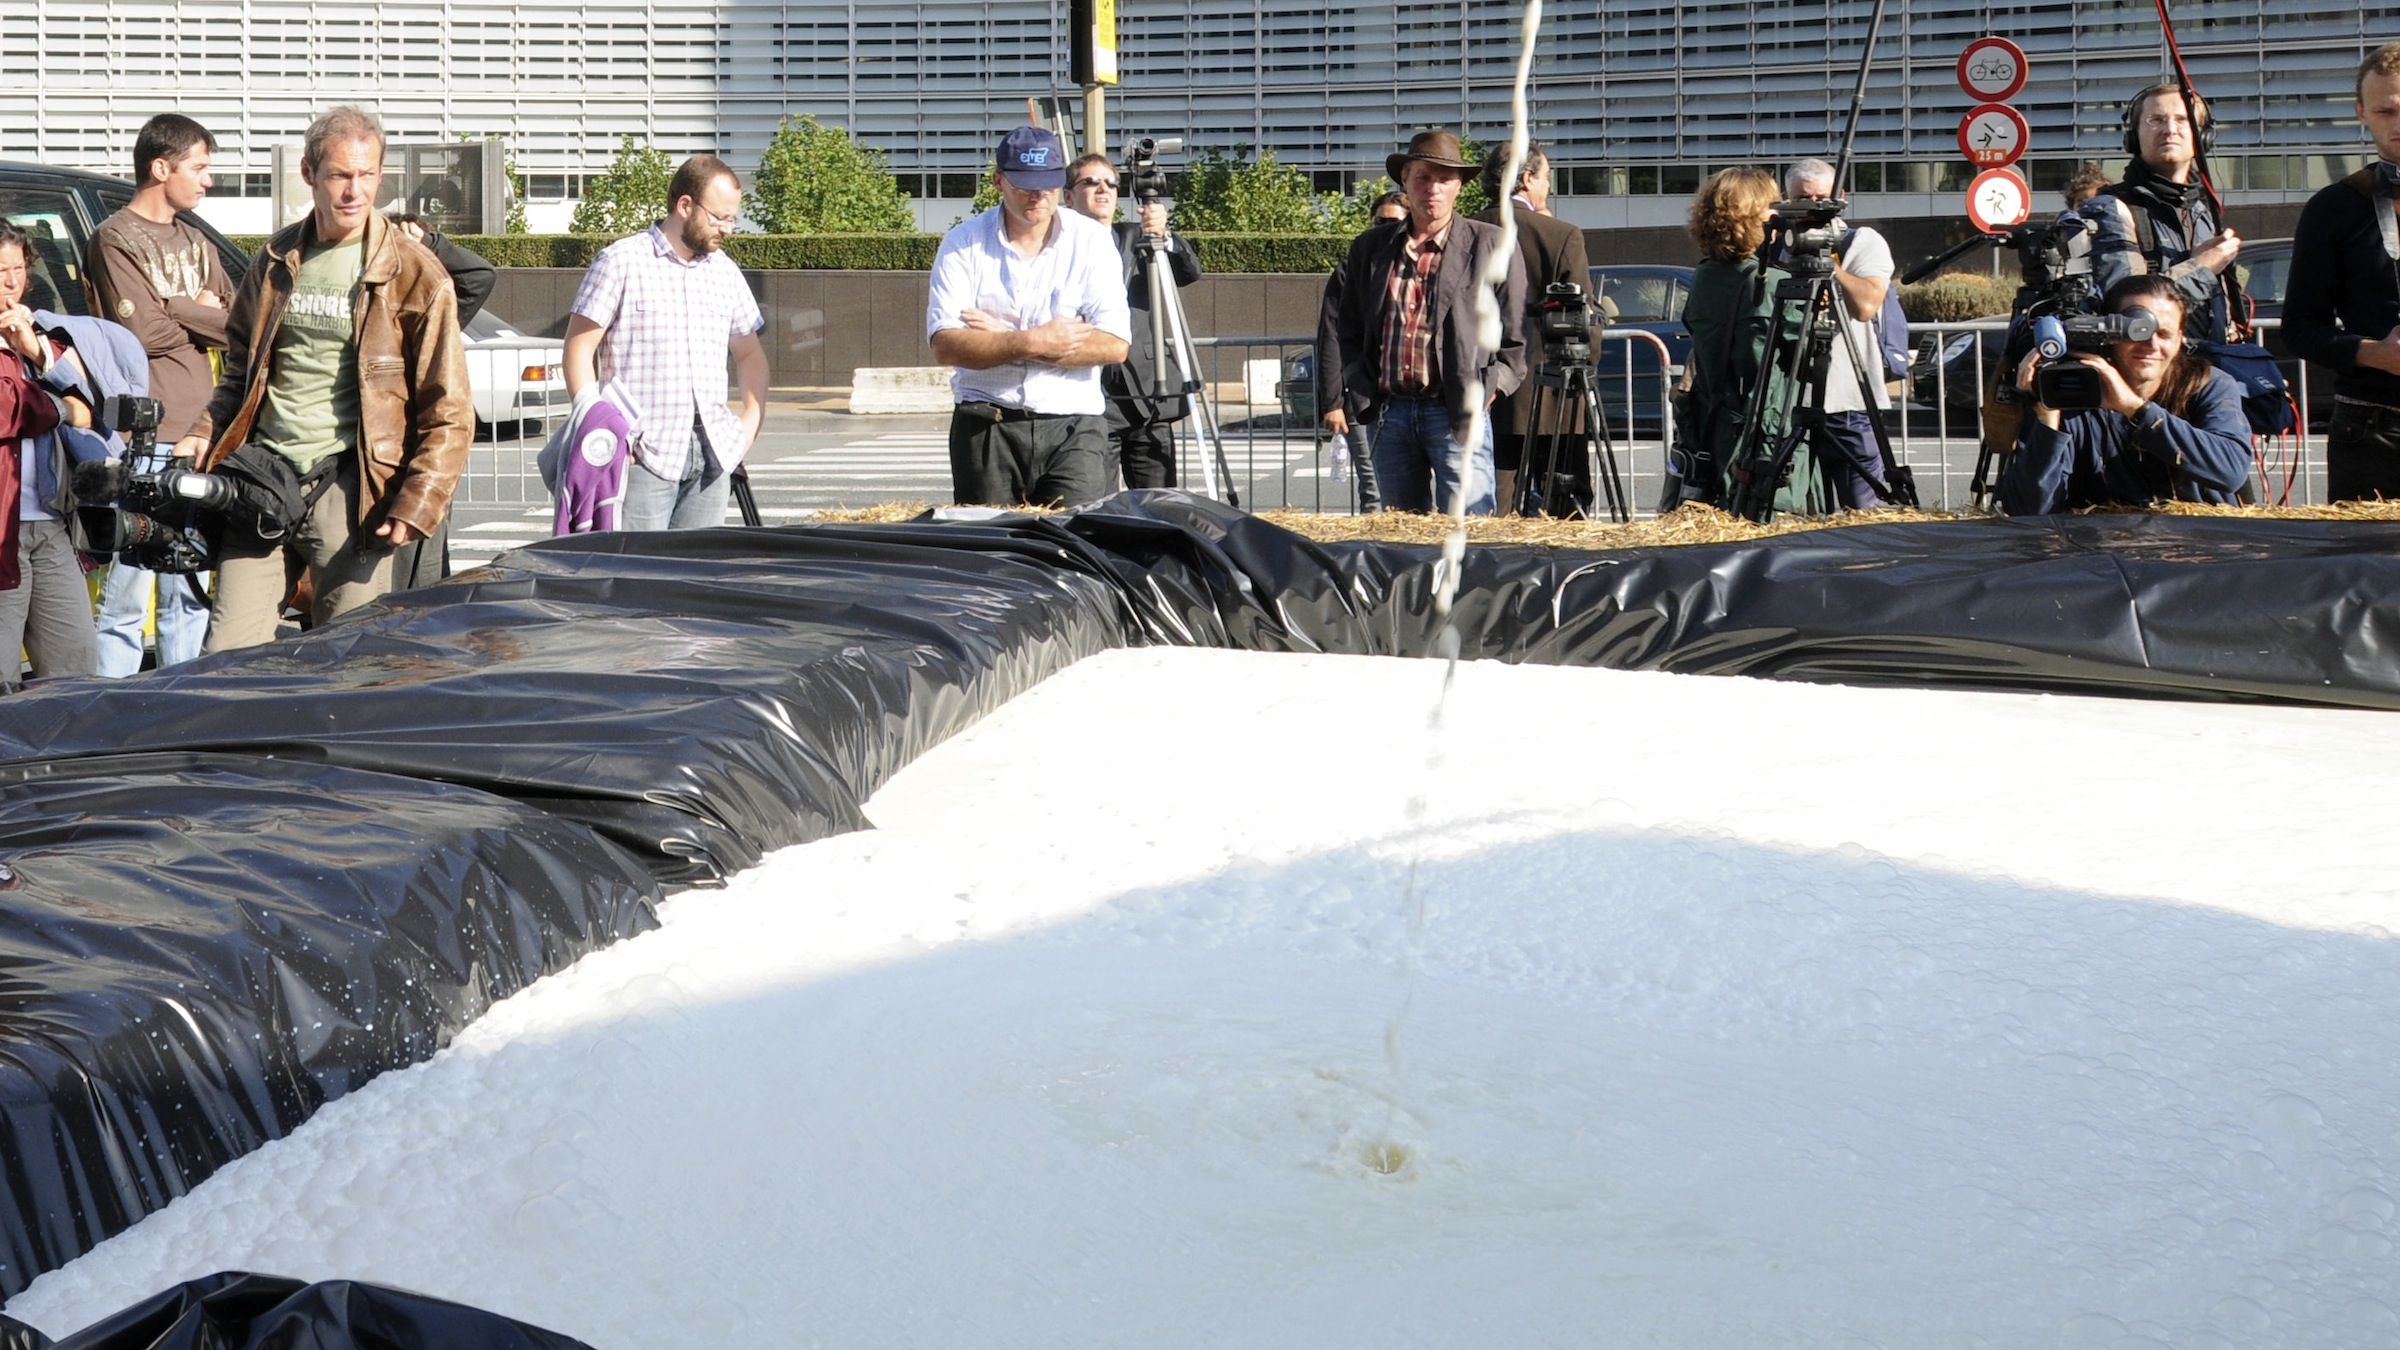 Belgian milk producers fill up a makeshift pool with milk in front of the European Union Commission headquarters, in Brussels, Monday Sept. 21, 2009. Dairy farmers dumped thousands of litres of milk outside the headquarters of the European Union in Brussels on Monday to symbolise ongoing Europe-wide protests for price controls on milk to help struggling producers. More than 5,000 litres of milk was dumped into an artificial lake made from hay bales. (AP Photo/Thierry Charlier)